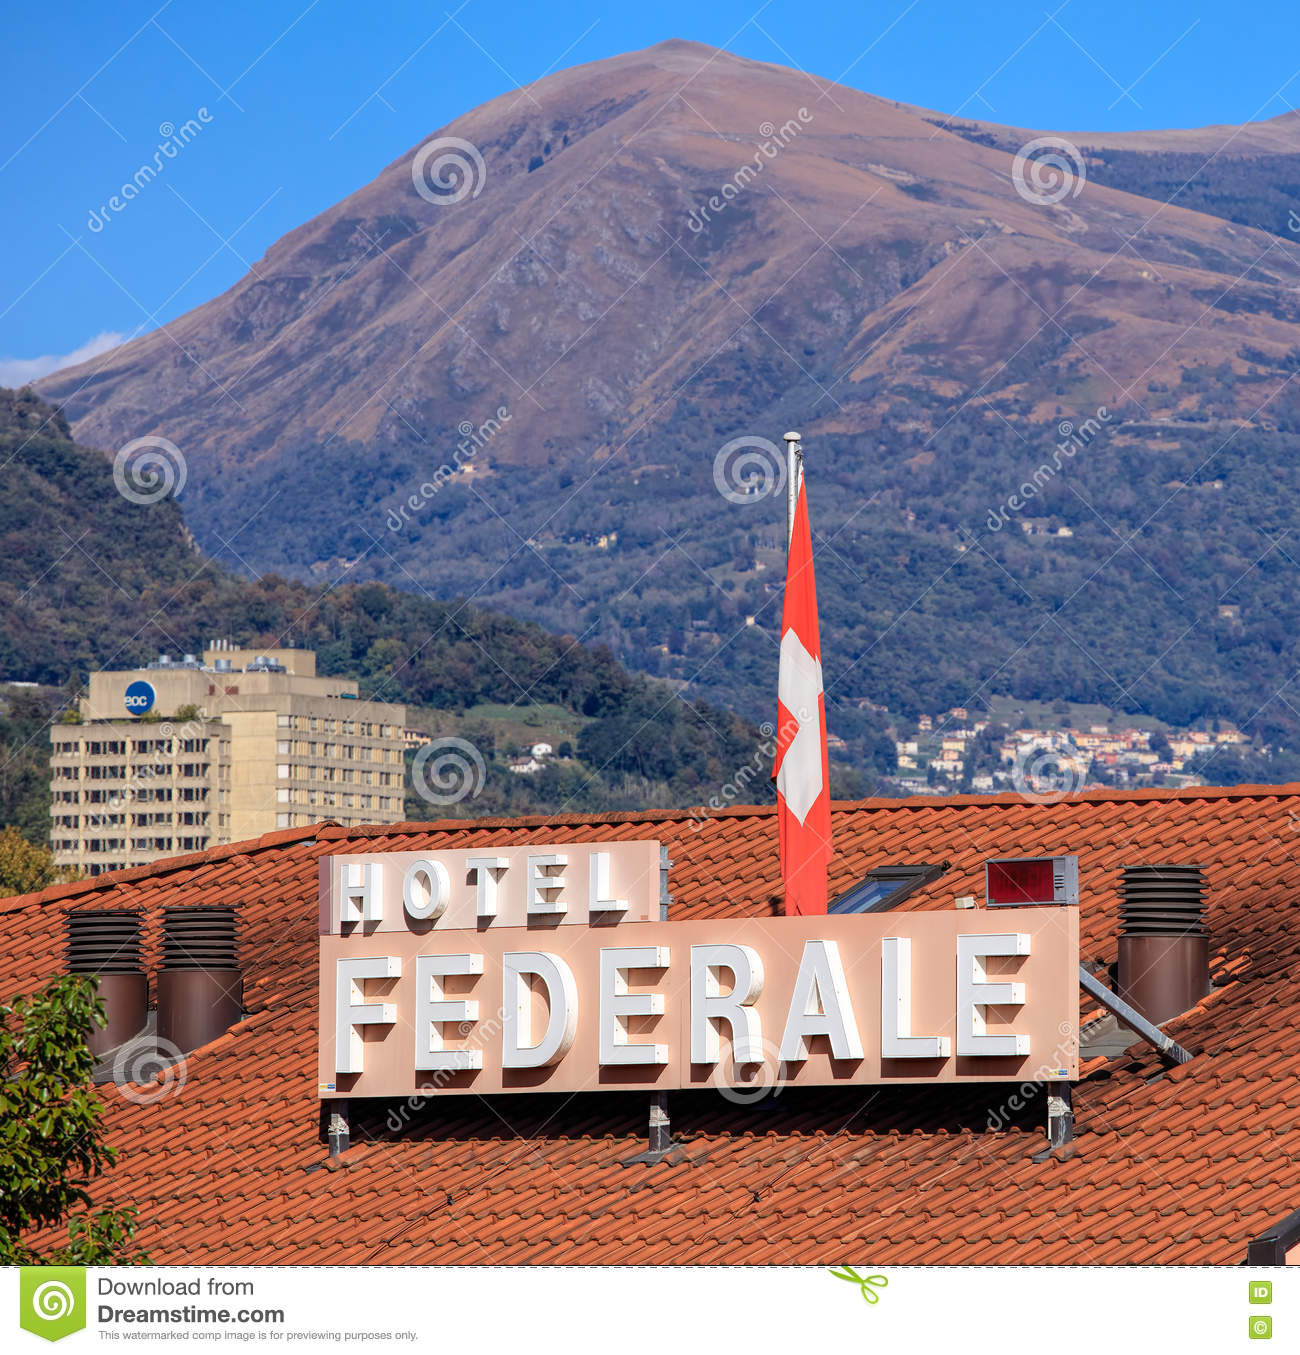 Hotel Federale Roof Of The Hotel Federale In Lugano Switzerland Editorial